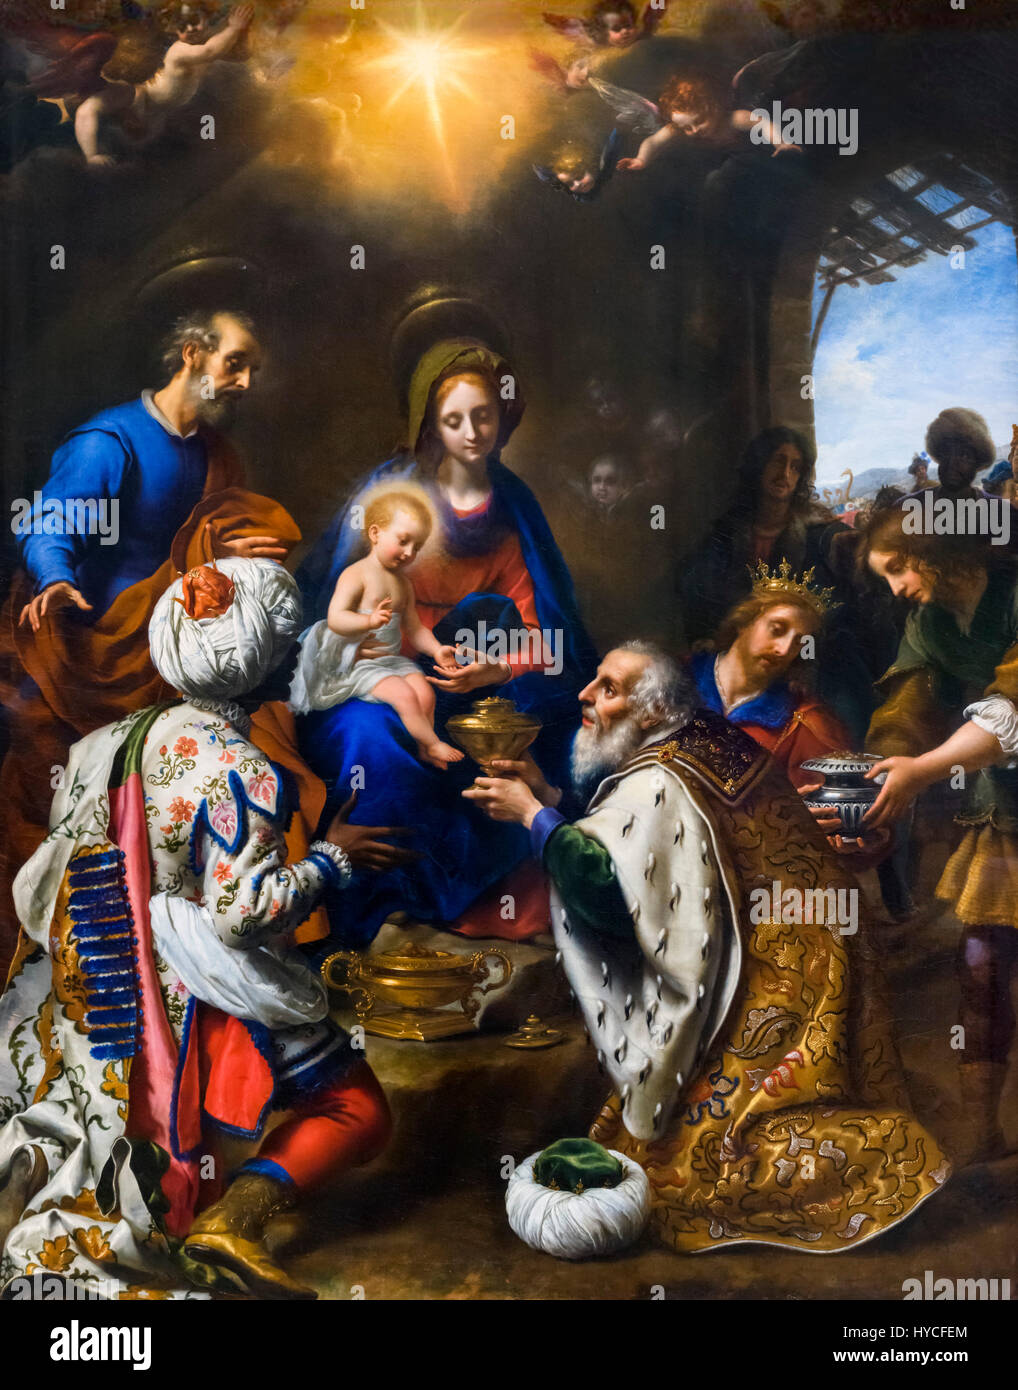 Nativity Scene. The Adoration of the Kings by Carlo Dolci (1616-1686), oil on canvas, 1649. Baby Jesus receiving - Stock Image